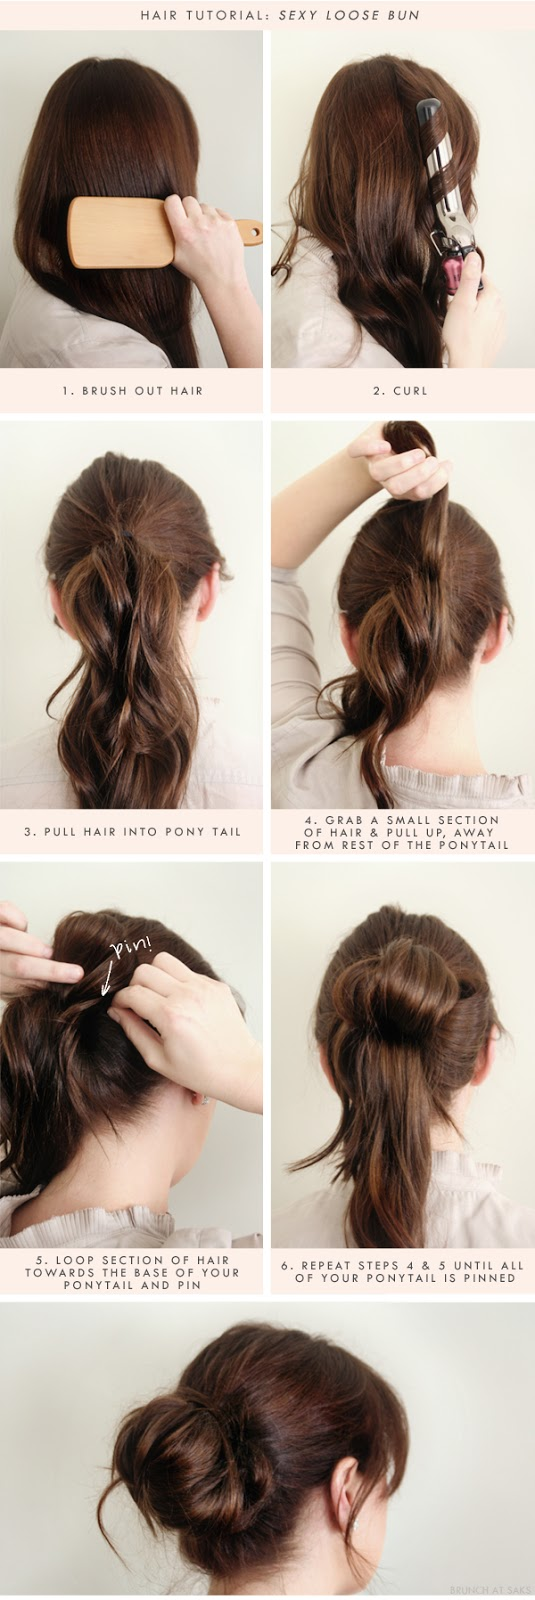 Marvelous Top 25 Messy Hair Bun Tutorials Perfect For Those Lazy Mornings Short Hairstyles Gunalazisus